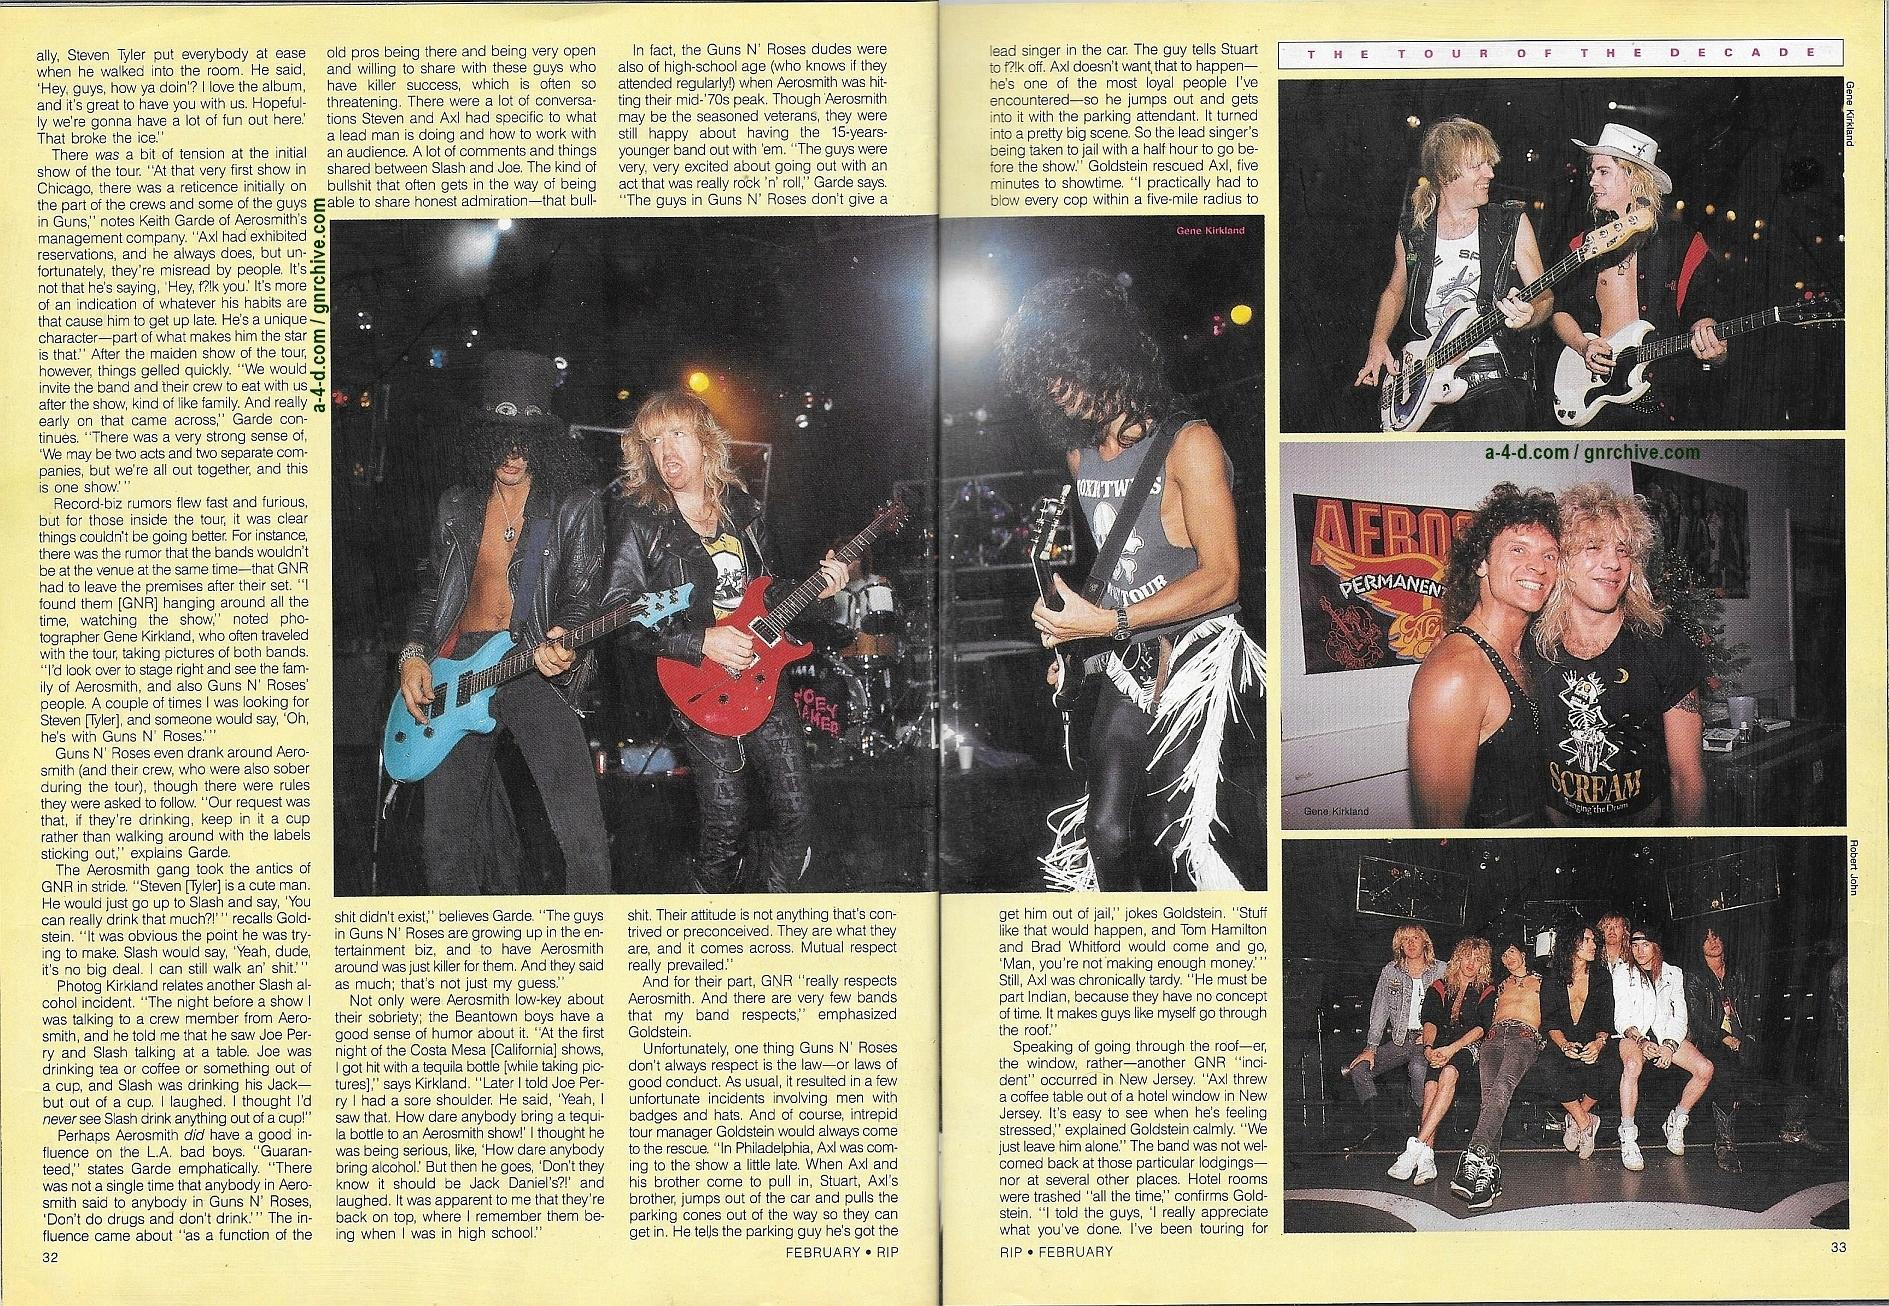 1989.02.DD - RIP Magazine - Aerosmith Meets Guns N' Roses (Doug Goldstein) 1989_027